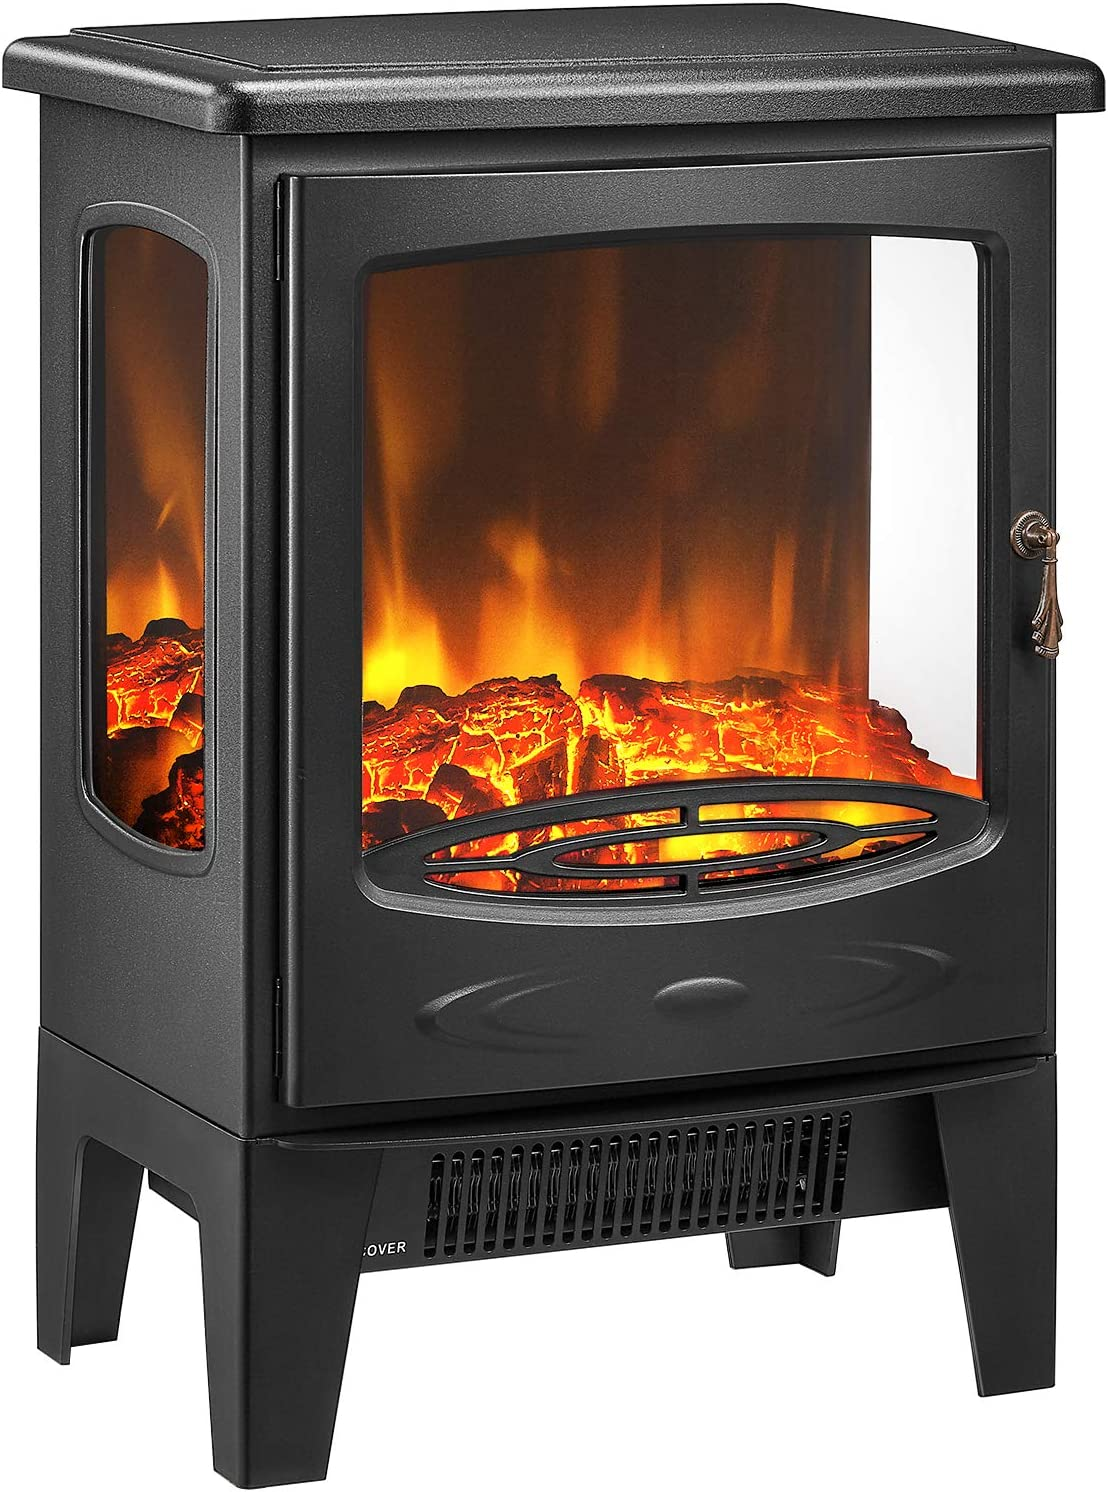 kealive Electric Fireplace 1500W Powerful Stove Heater Freestanding Electric Stove 3D Realistic Log Flame Electric Heater, Glass Sides and Sturdy Metal Legs